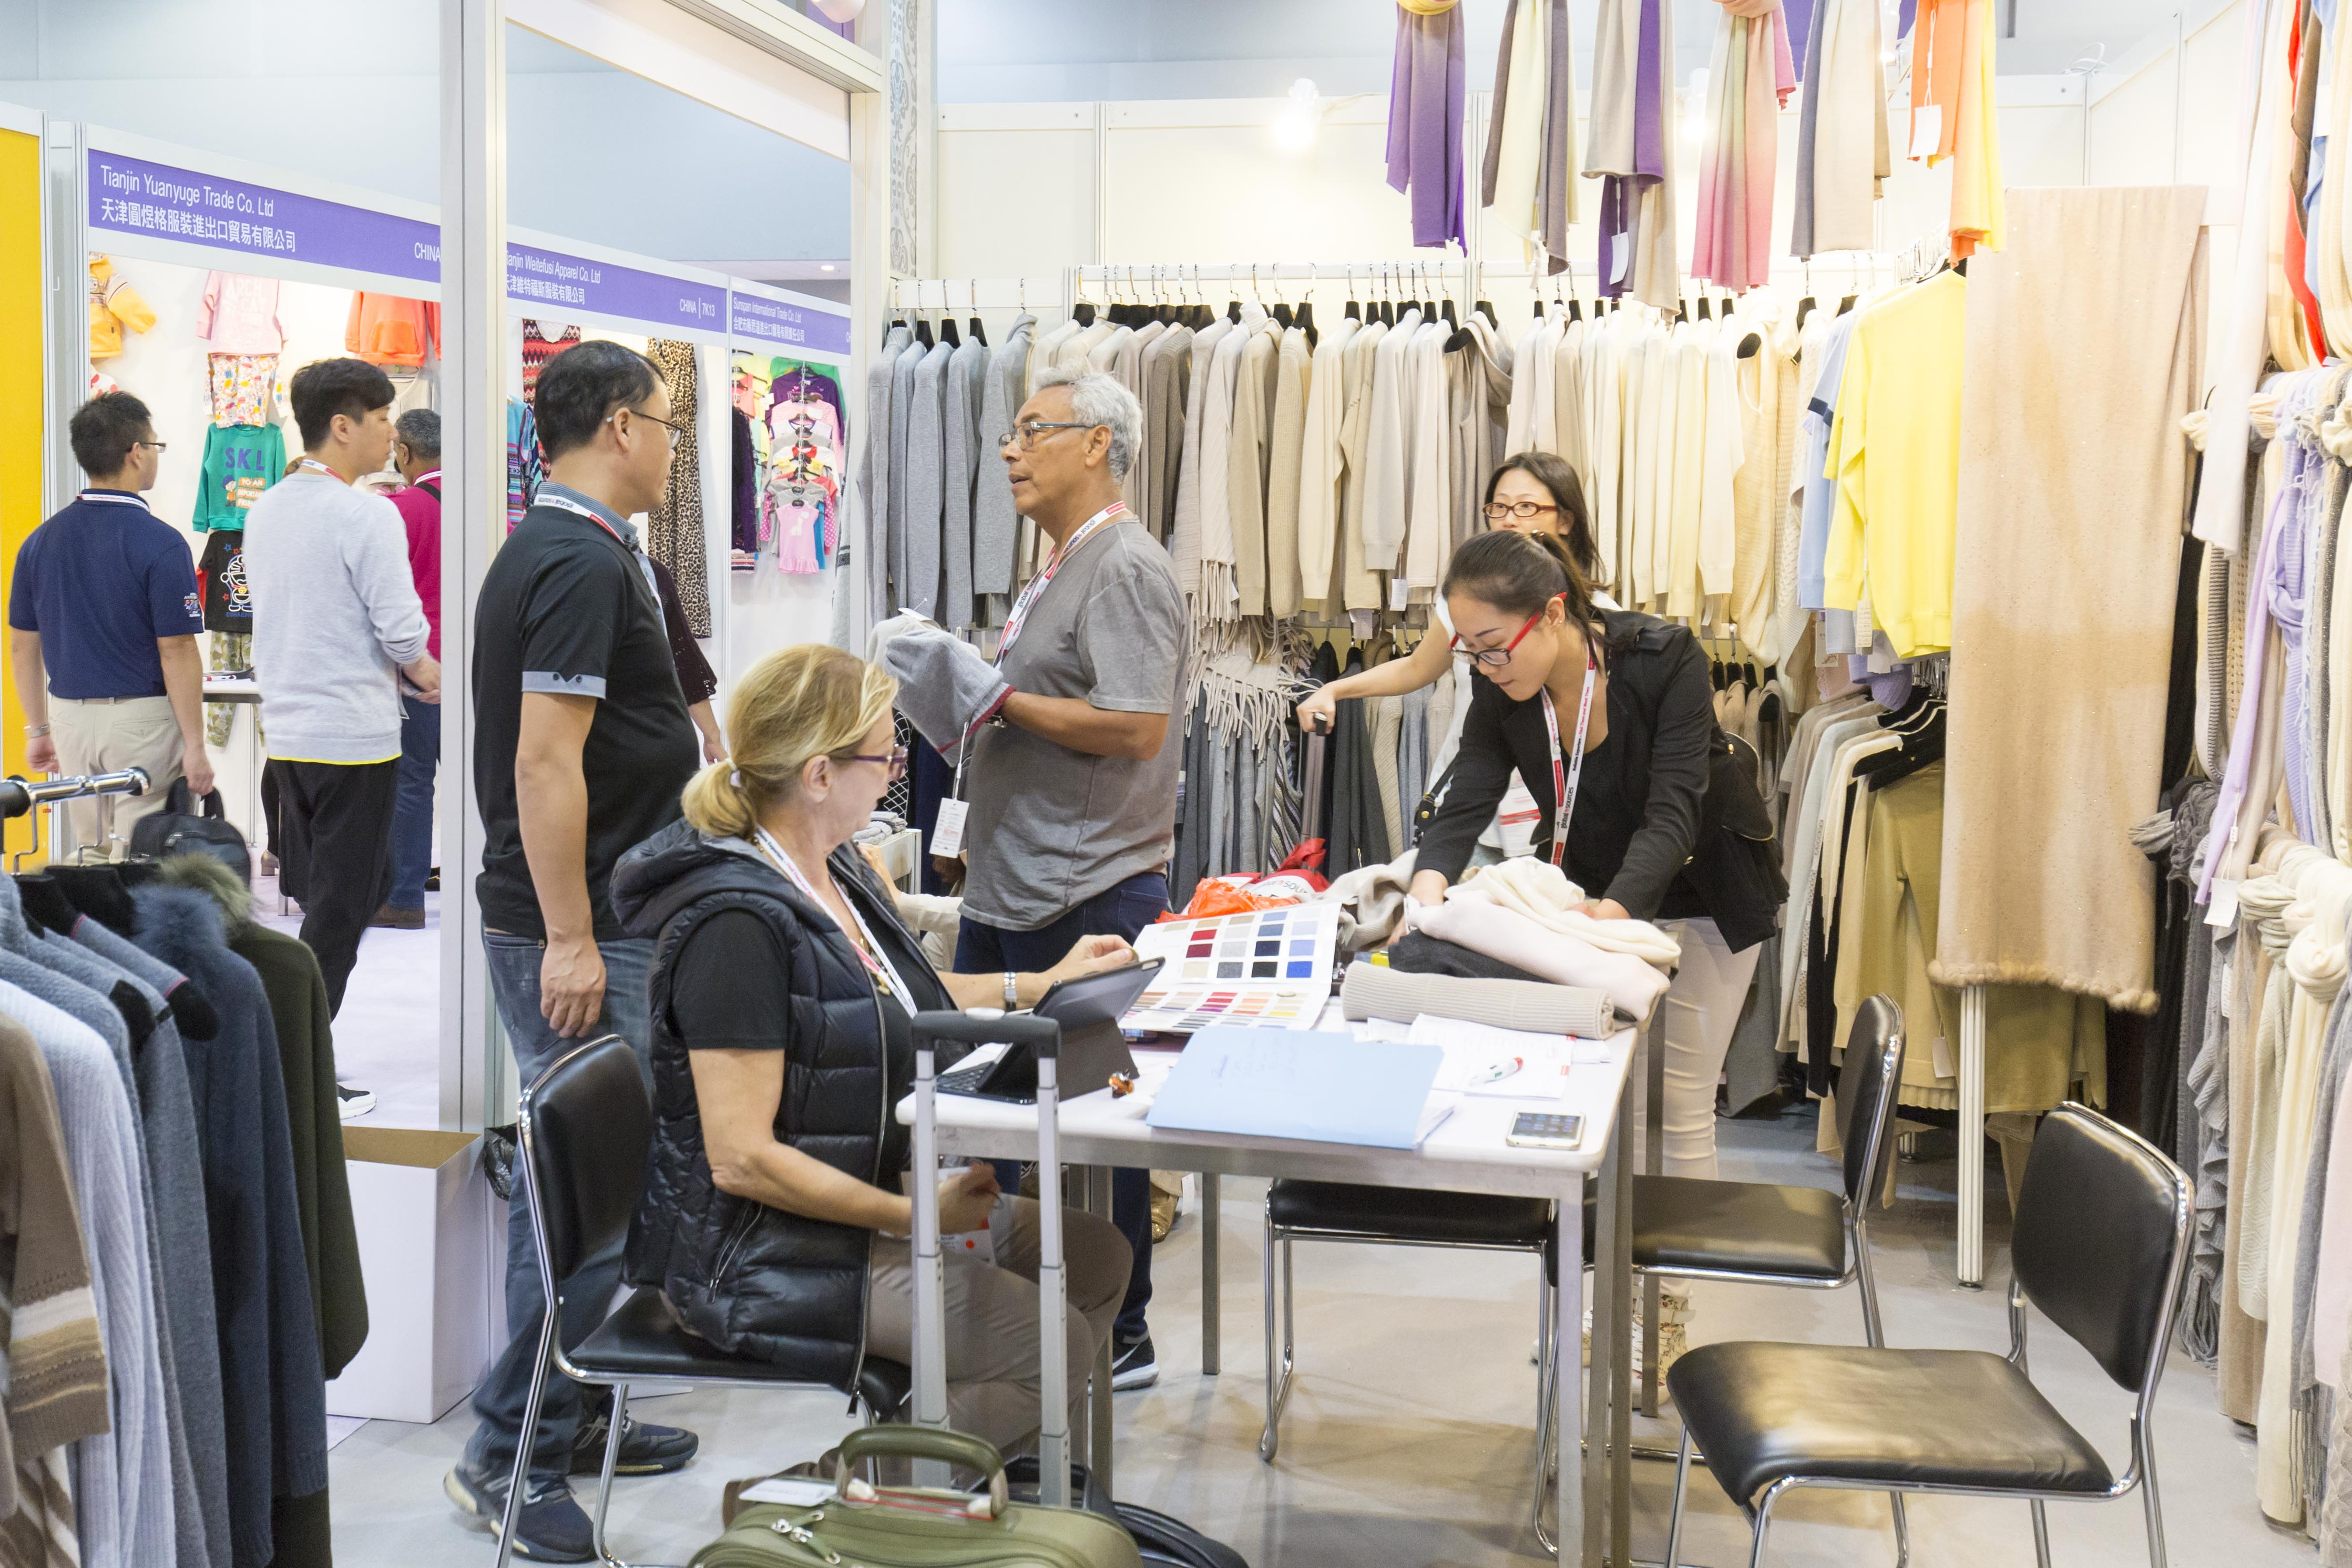 Inside the China Sourcing Fair held at the Asia Expo in Hong Kong.